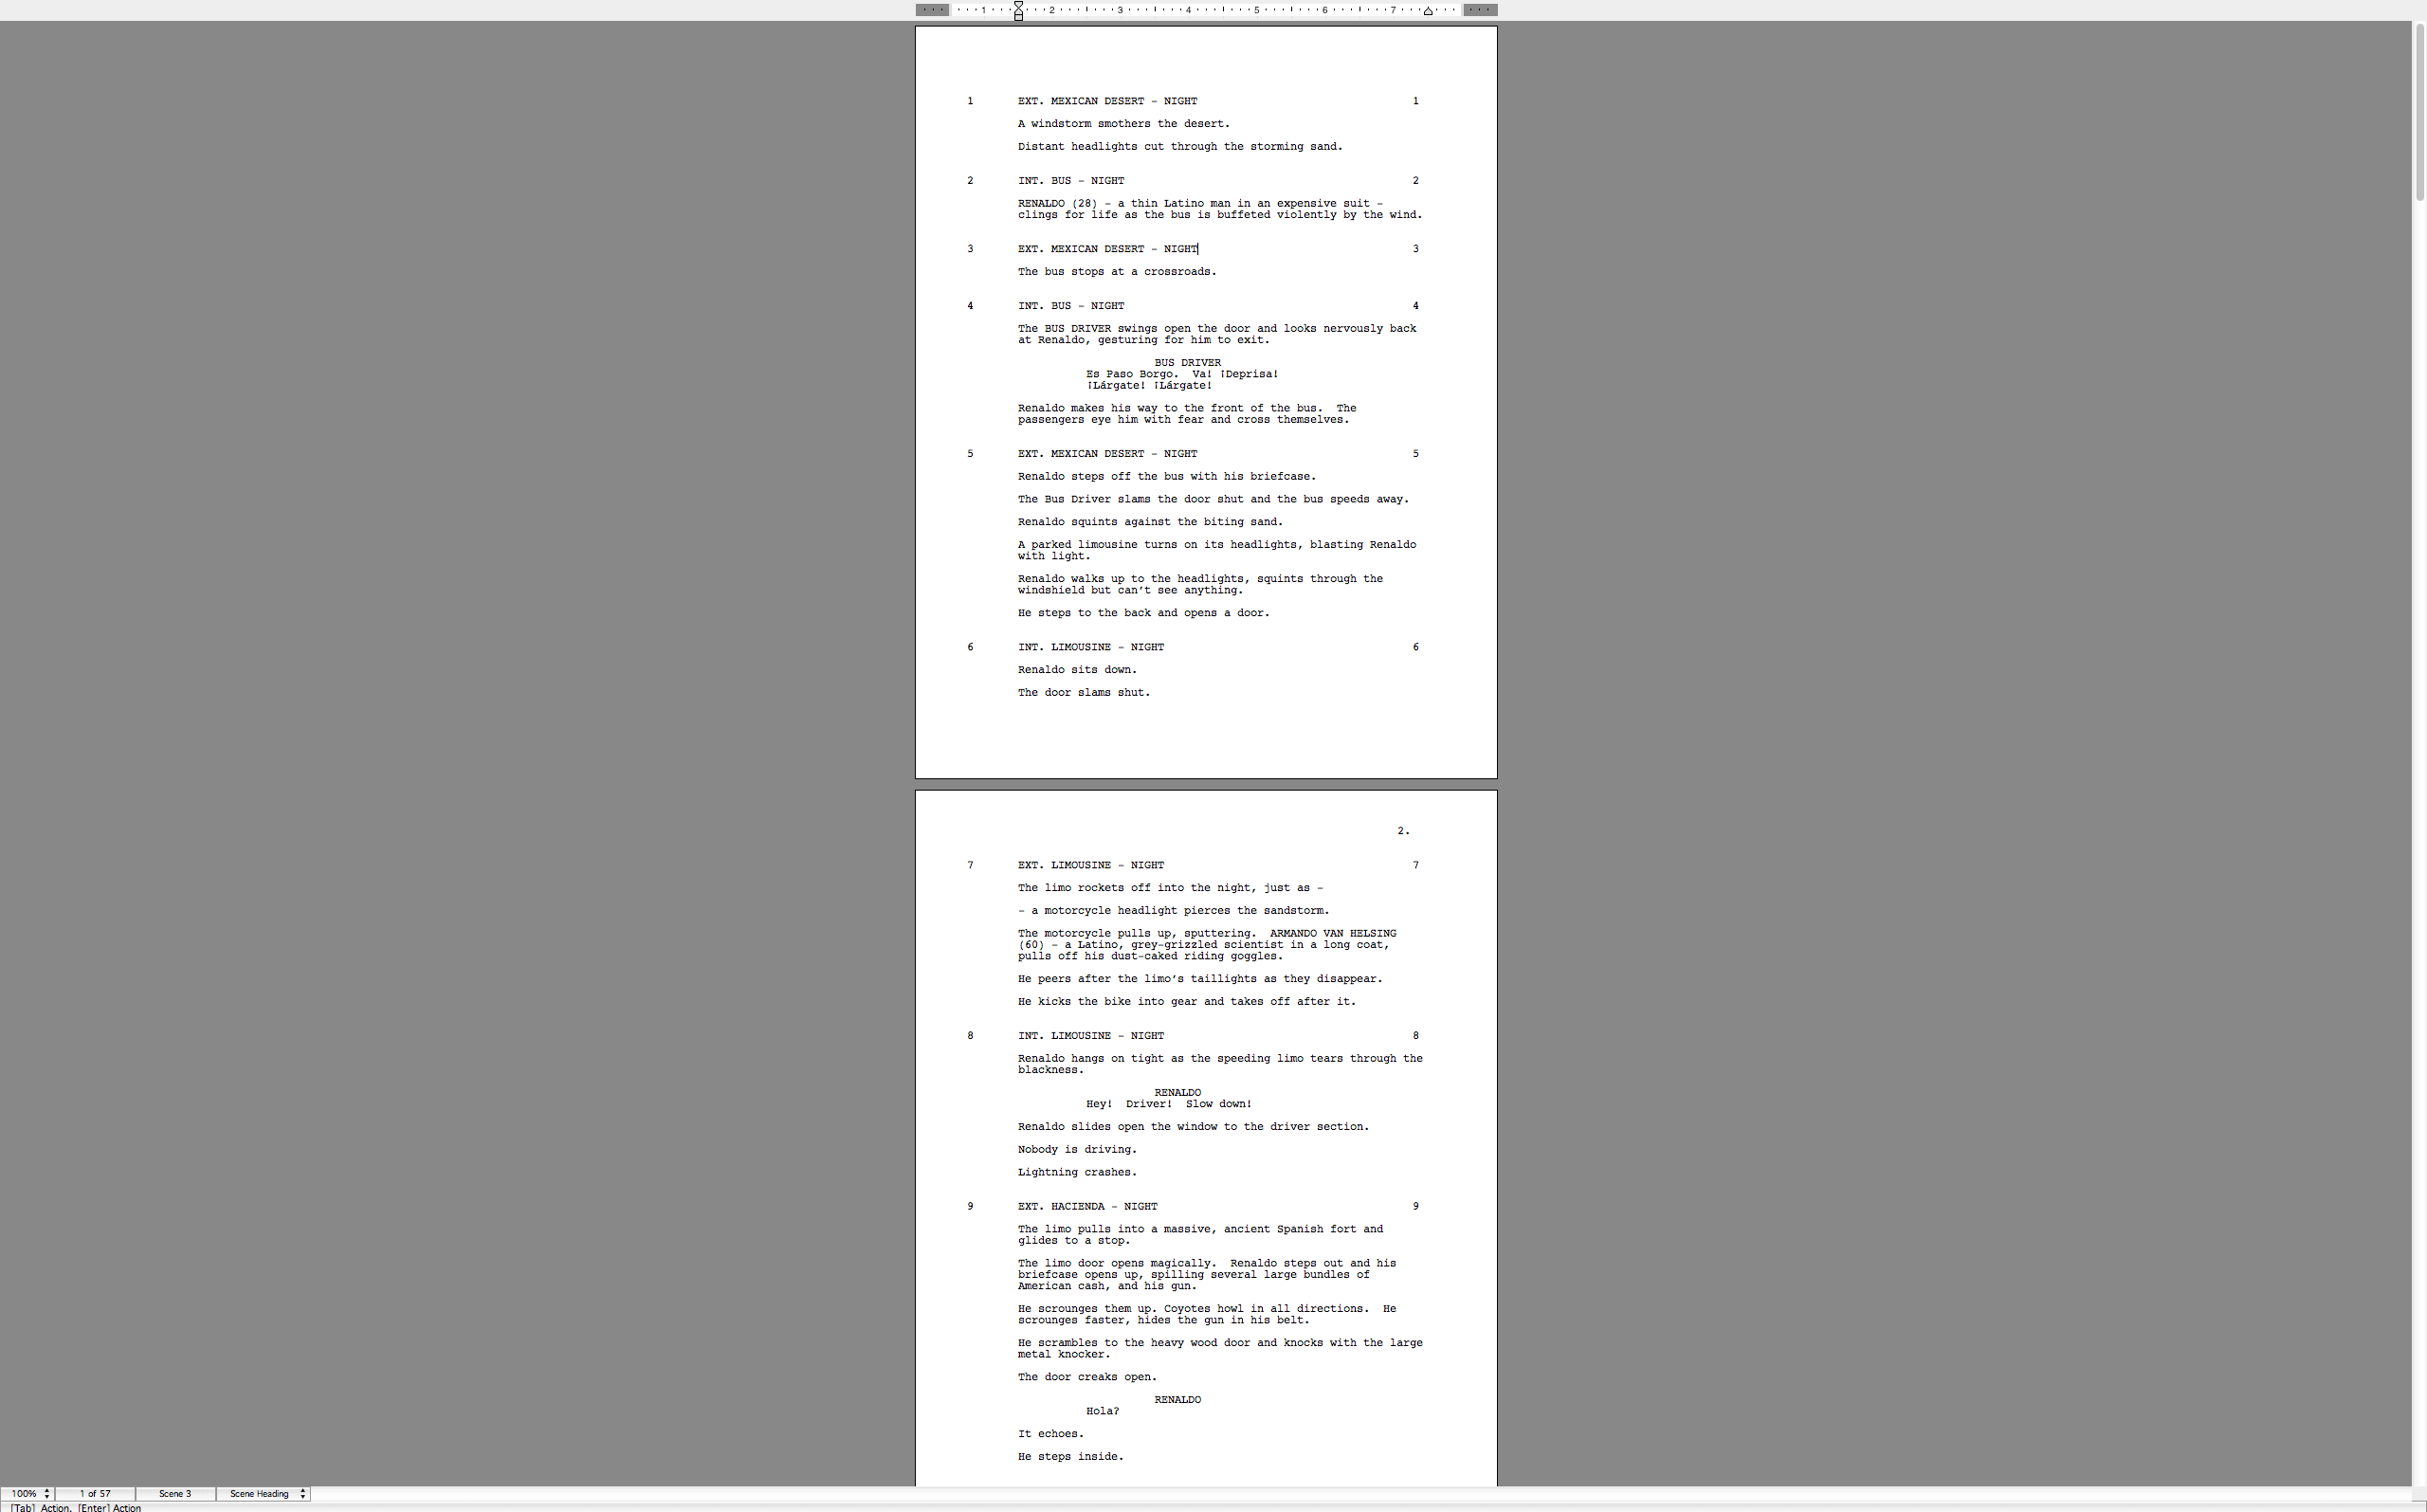 blog-fd-vs-mms-screenshot1